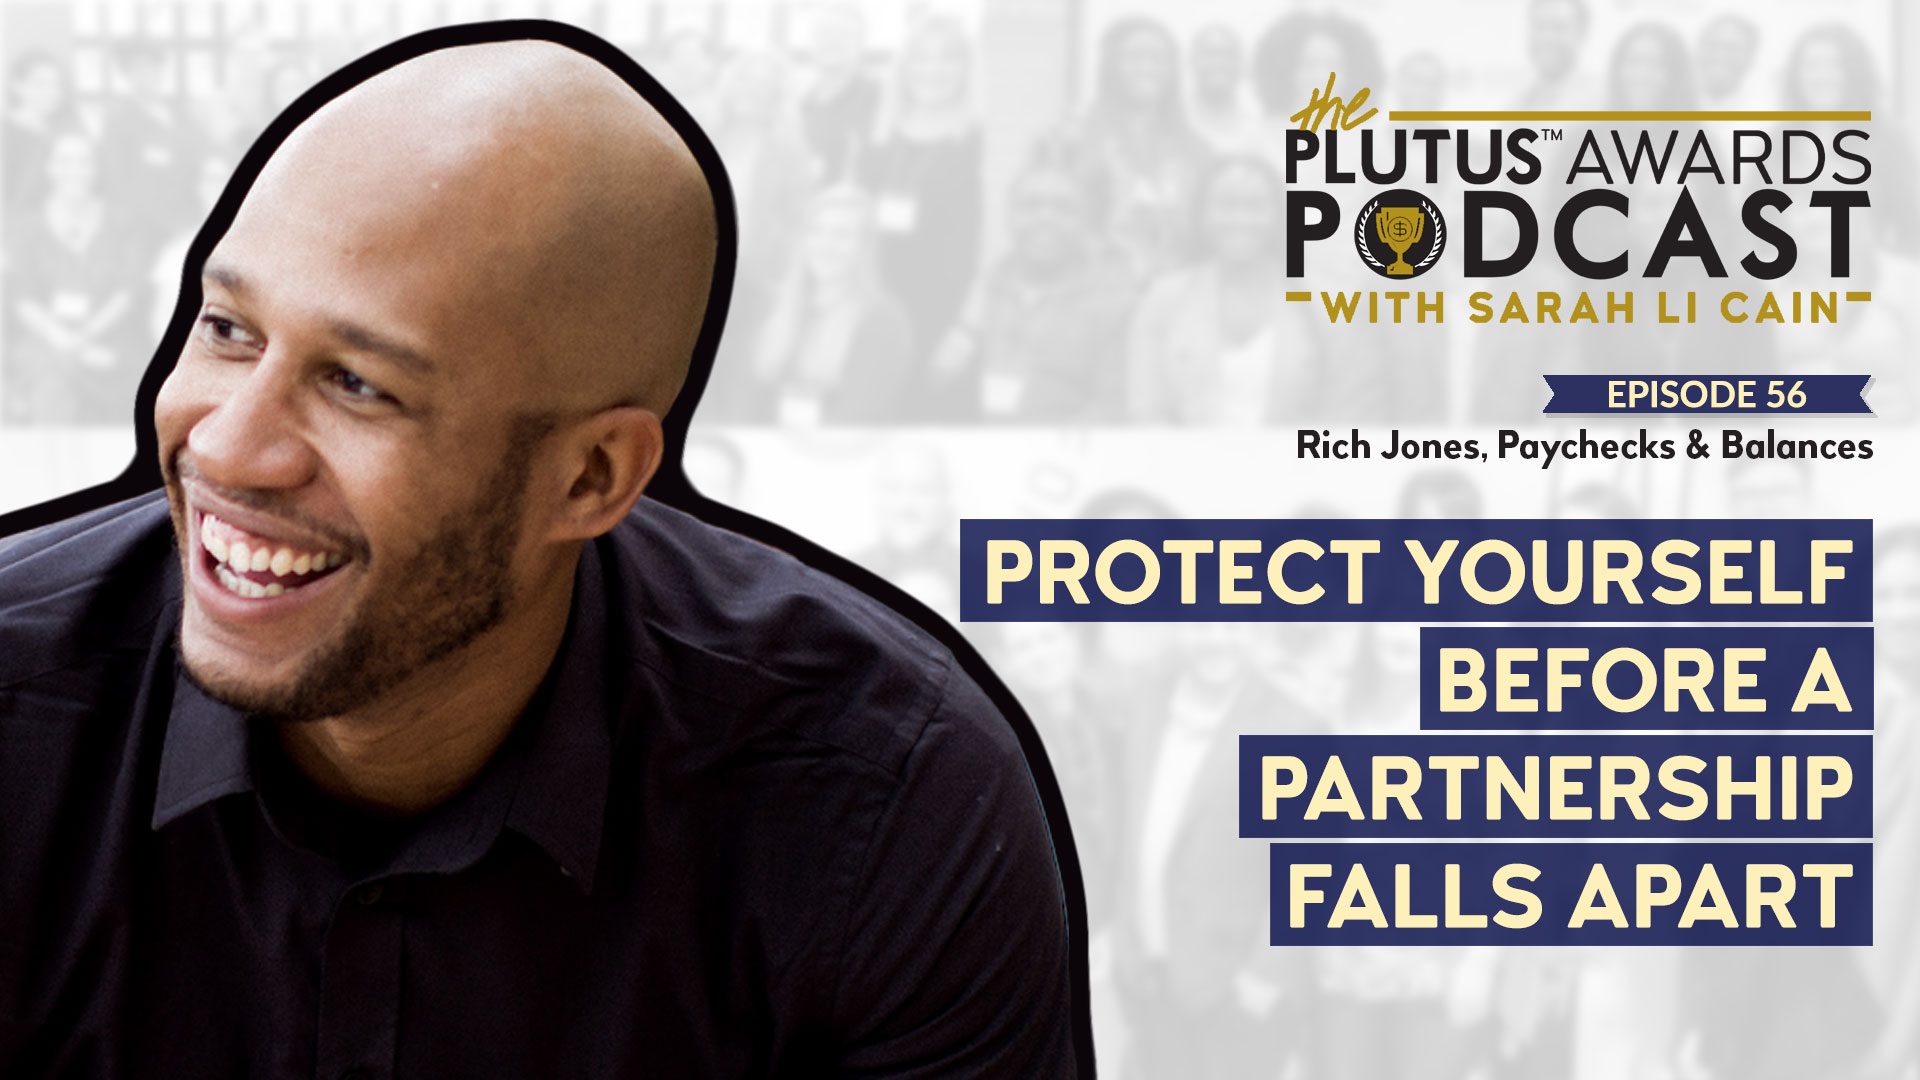 Plutus Awards Podcast - Rich Jones Featured Image